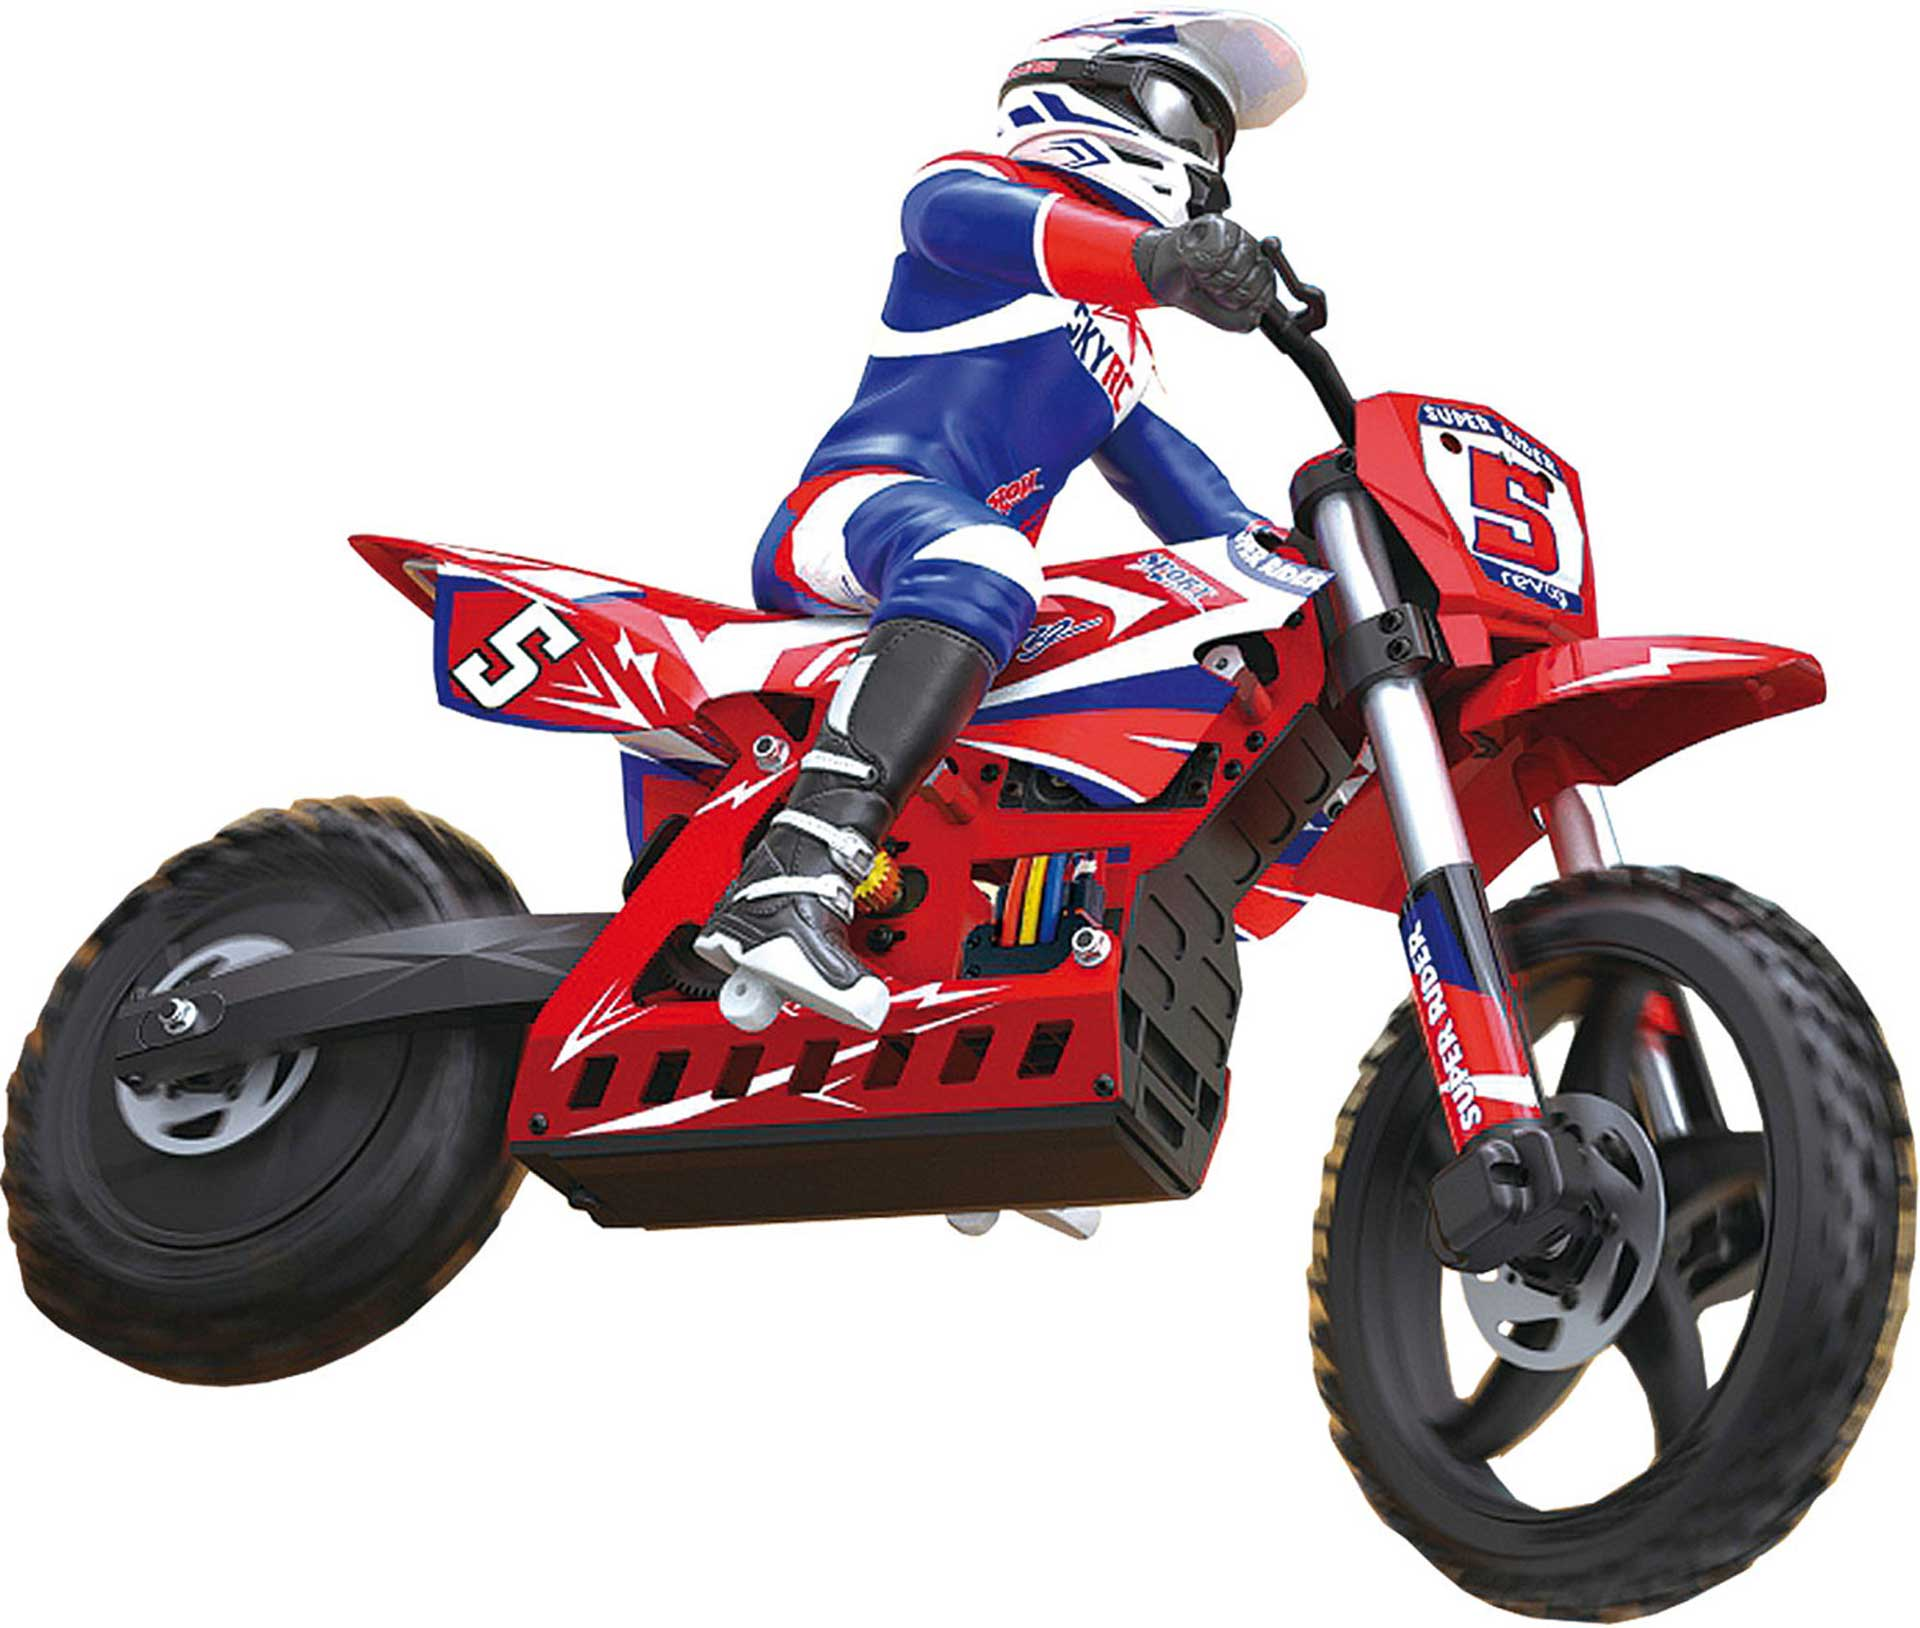 SKYRC SUPER RIDER SR5 1/4 SCALE RC DIRT BIKE